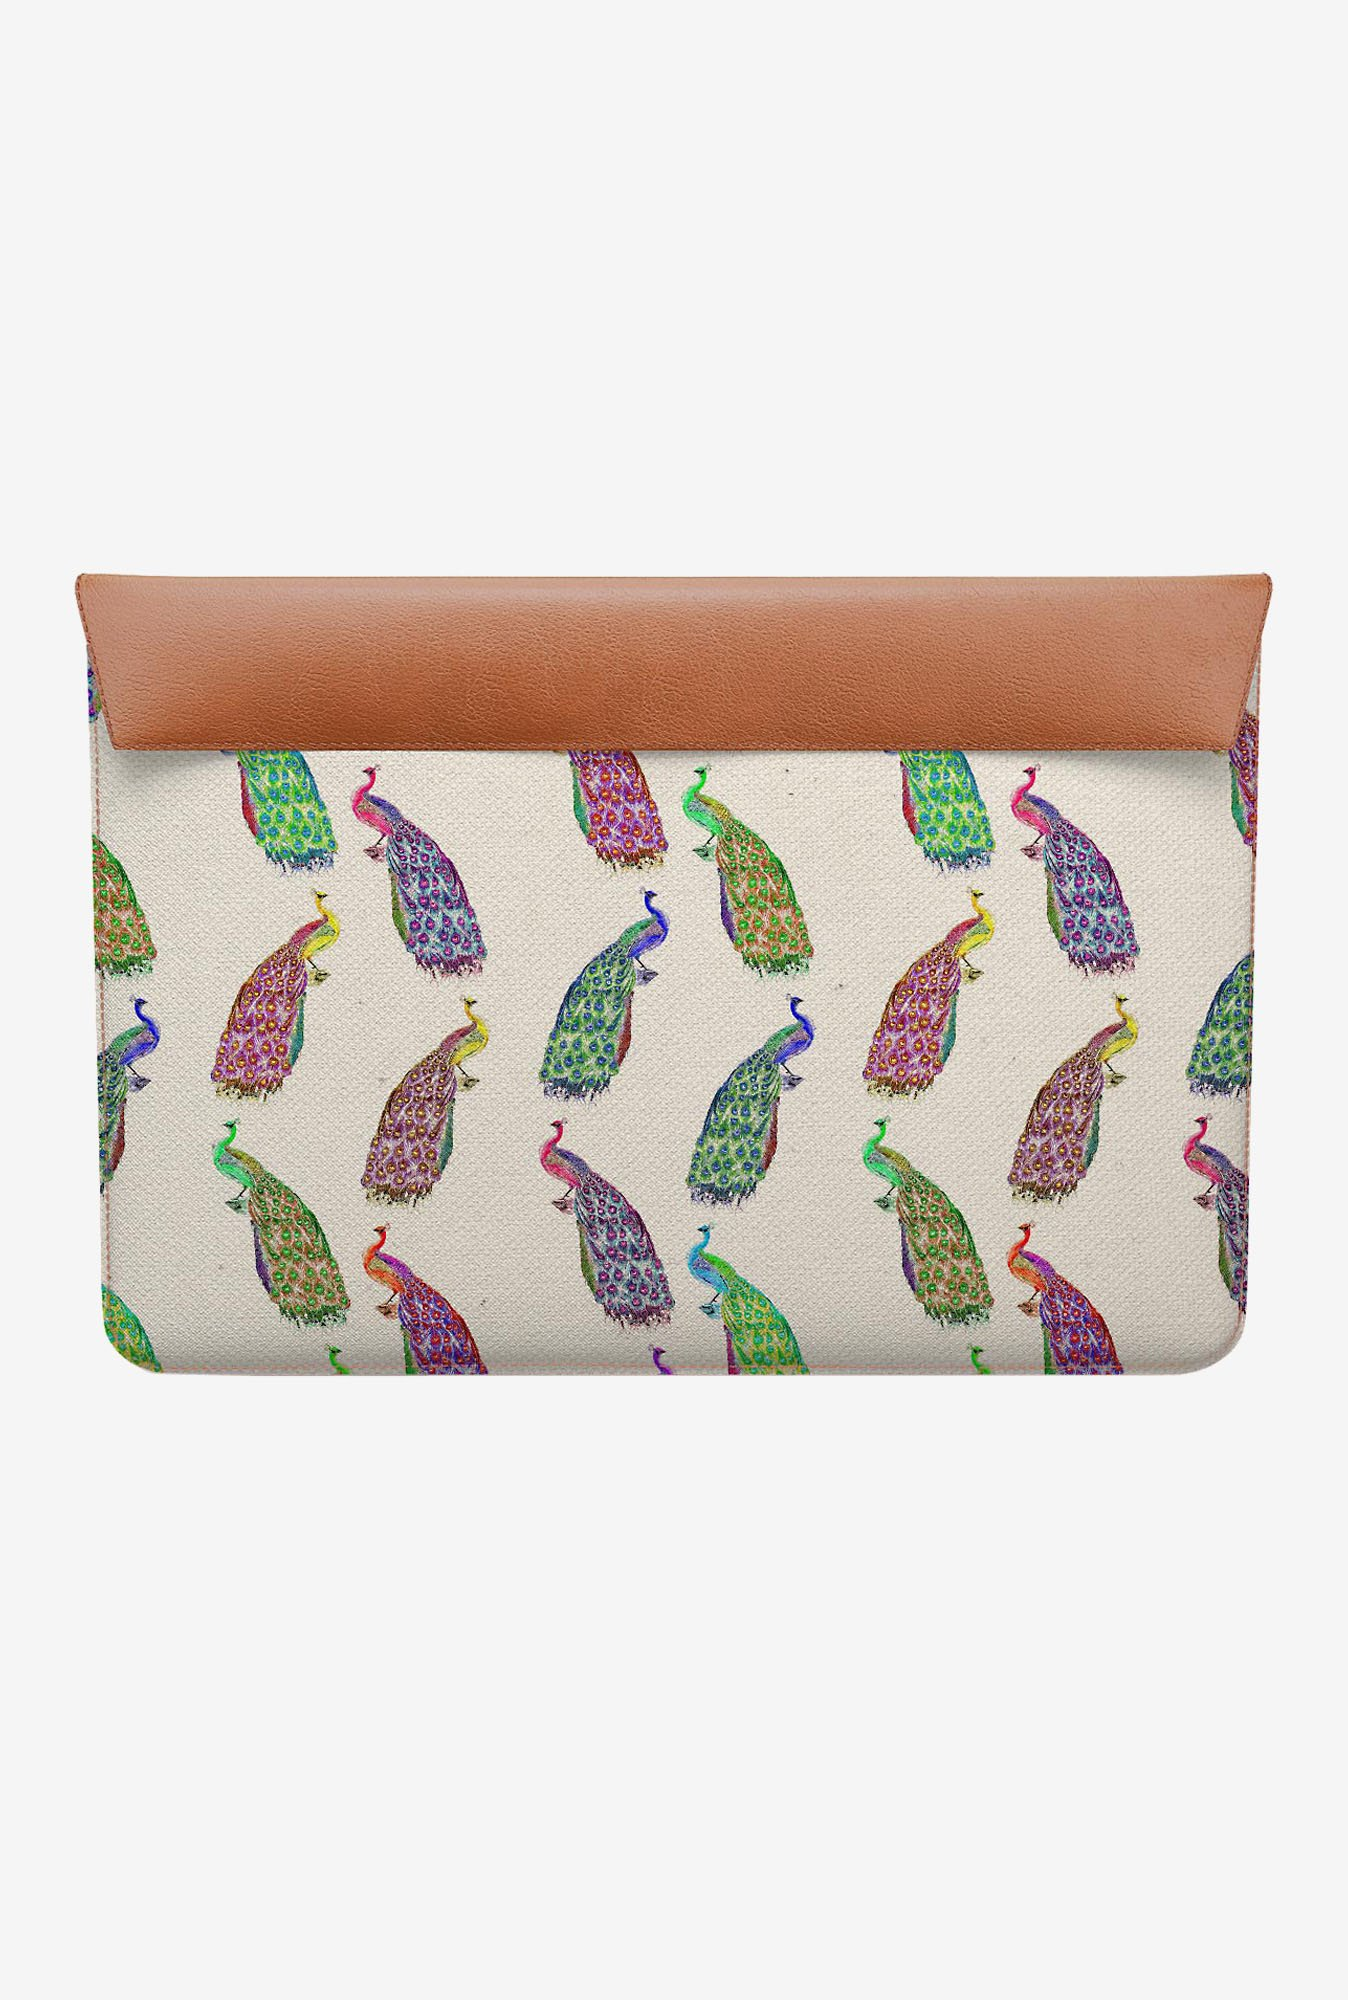 DailyObjects Retro Peacock MacBook Air 11 Envelope Sleeve